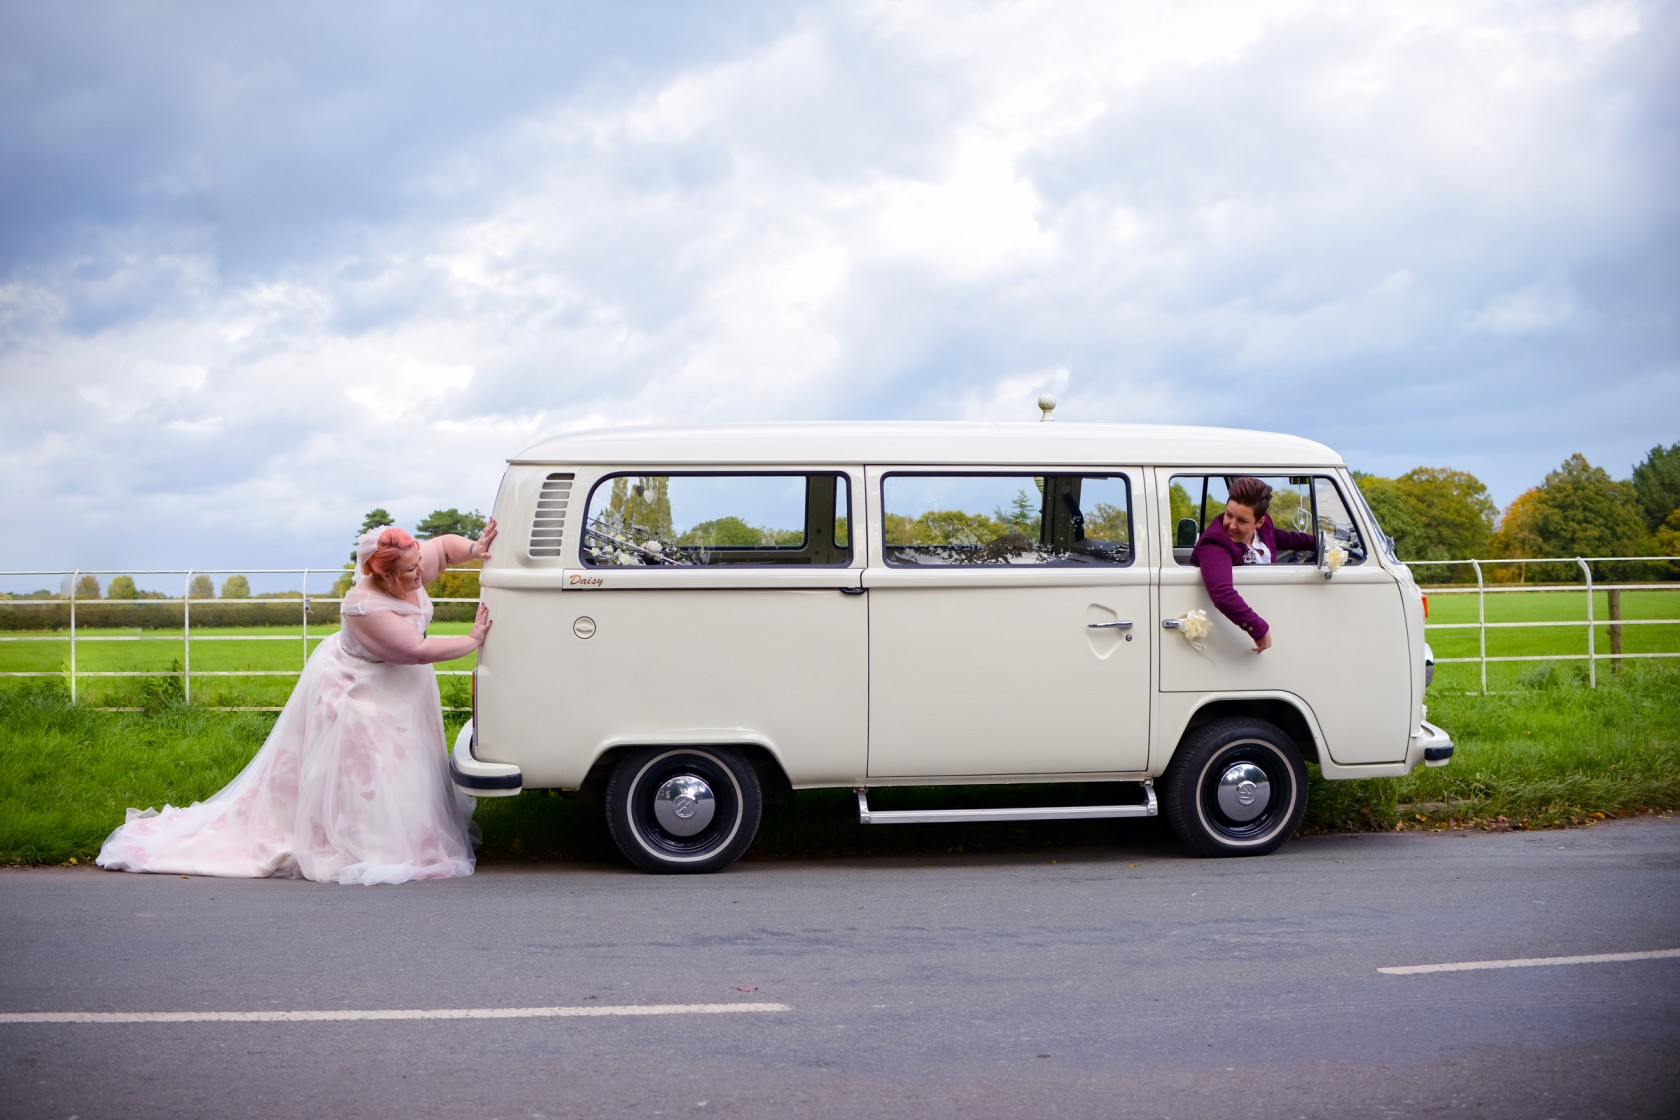 wonderland wedding - real wedding inspiration - DIY wedding - romantic wedding - same sex wedding - lgbtq wedding - unconventional wedding - wedding camper van - fun wedding photo